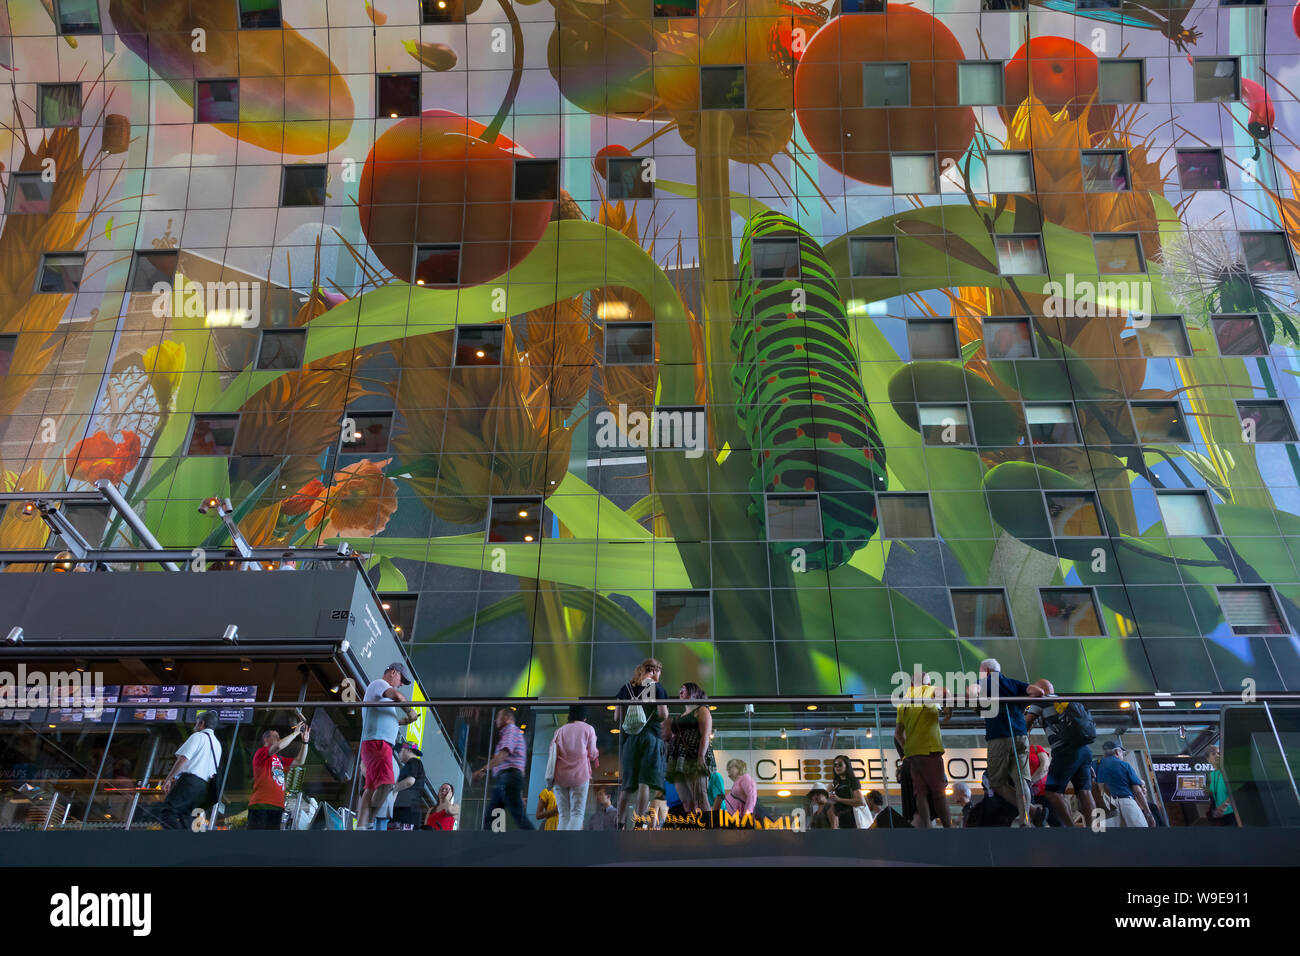 Rotterdam, Holland - July 30, 2019: Artwork at the wall of the Markthal, a residential and office building with a market hall underneath Stock Photo